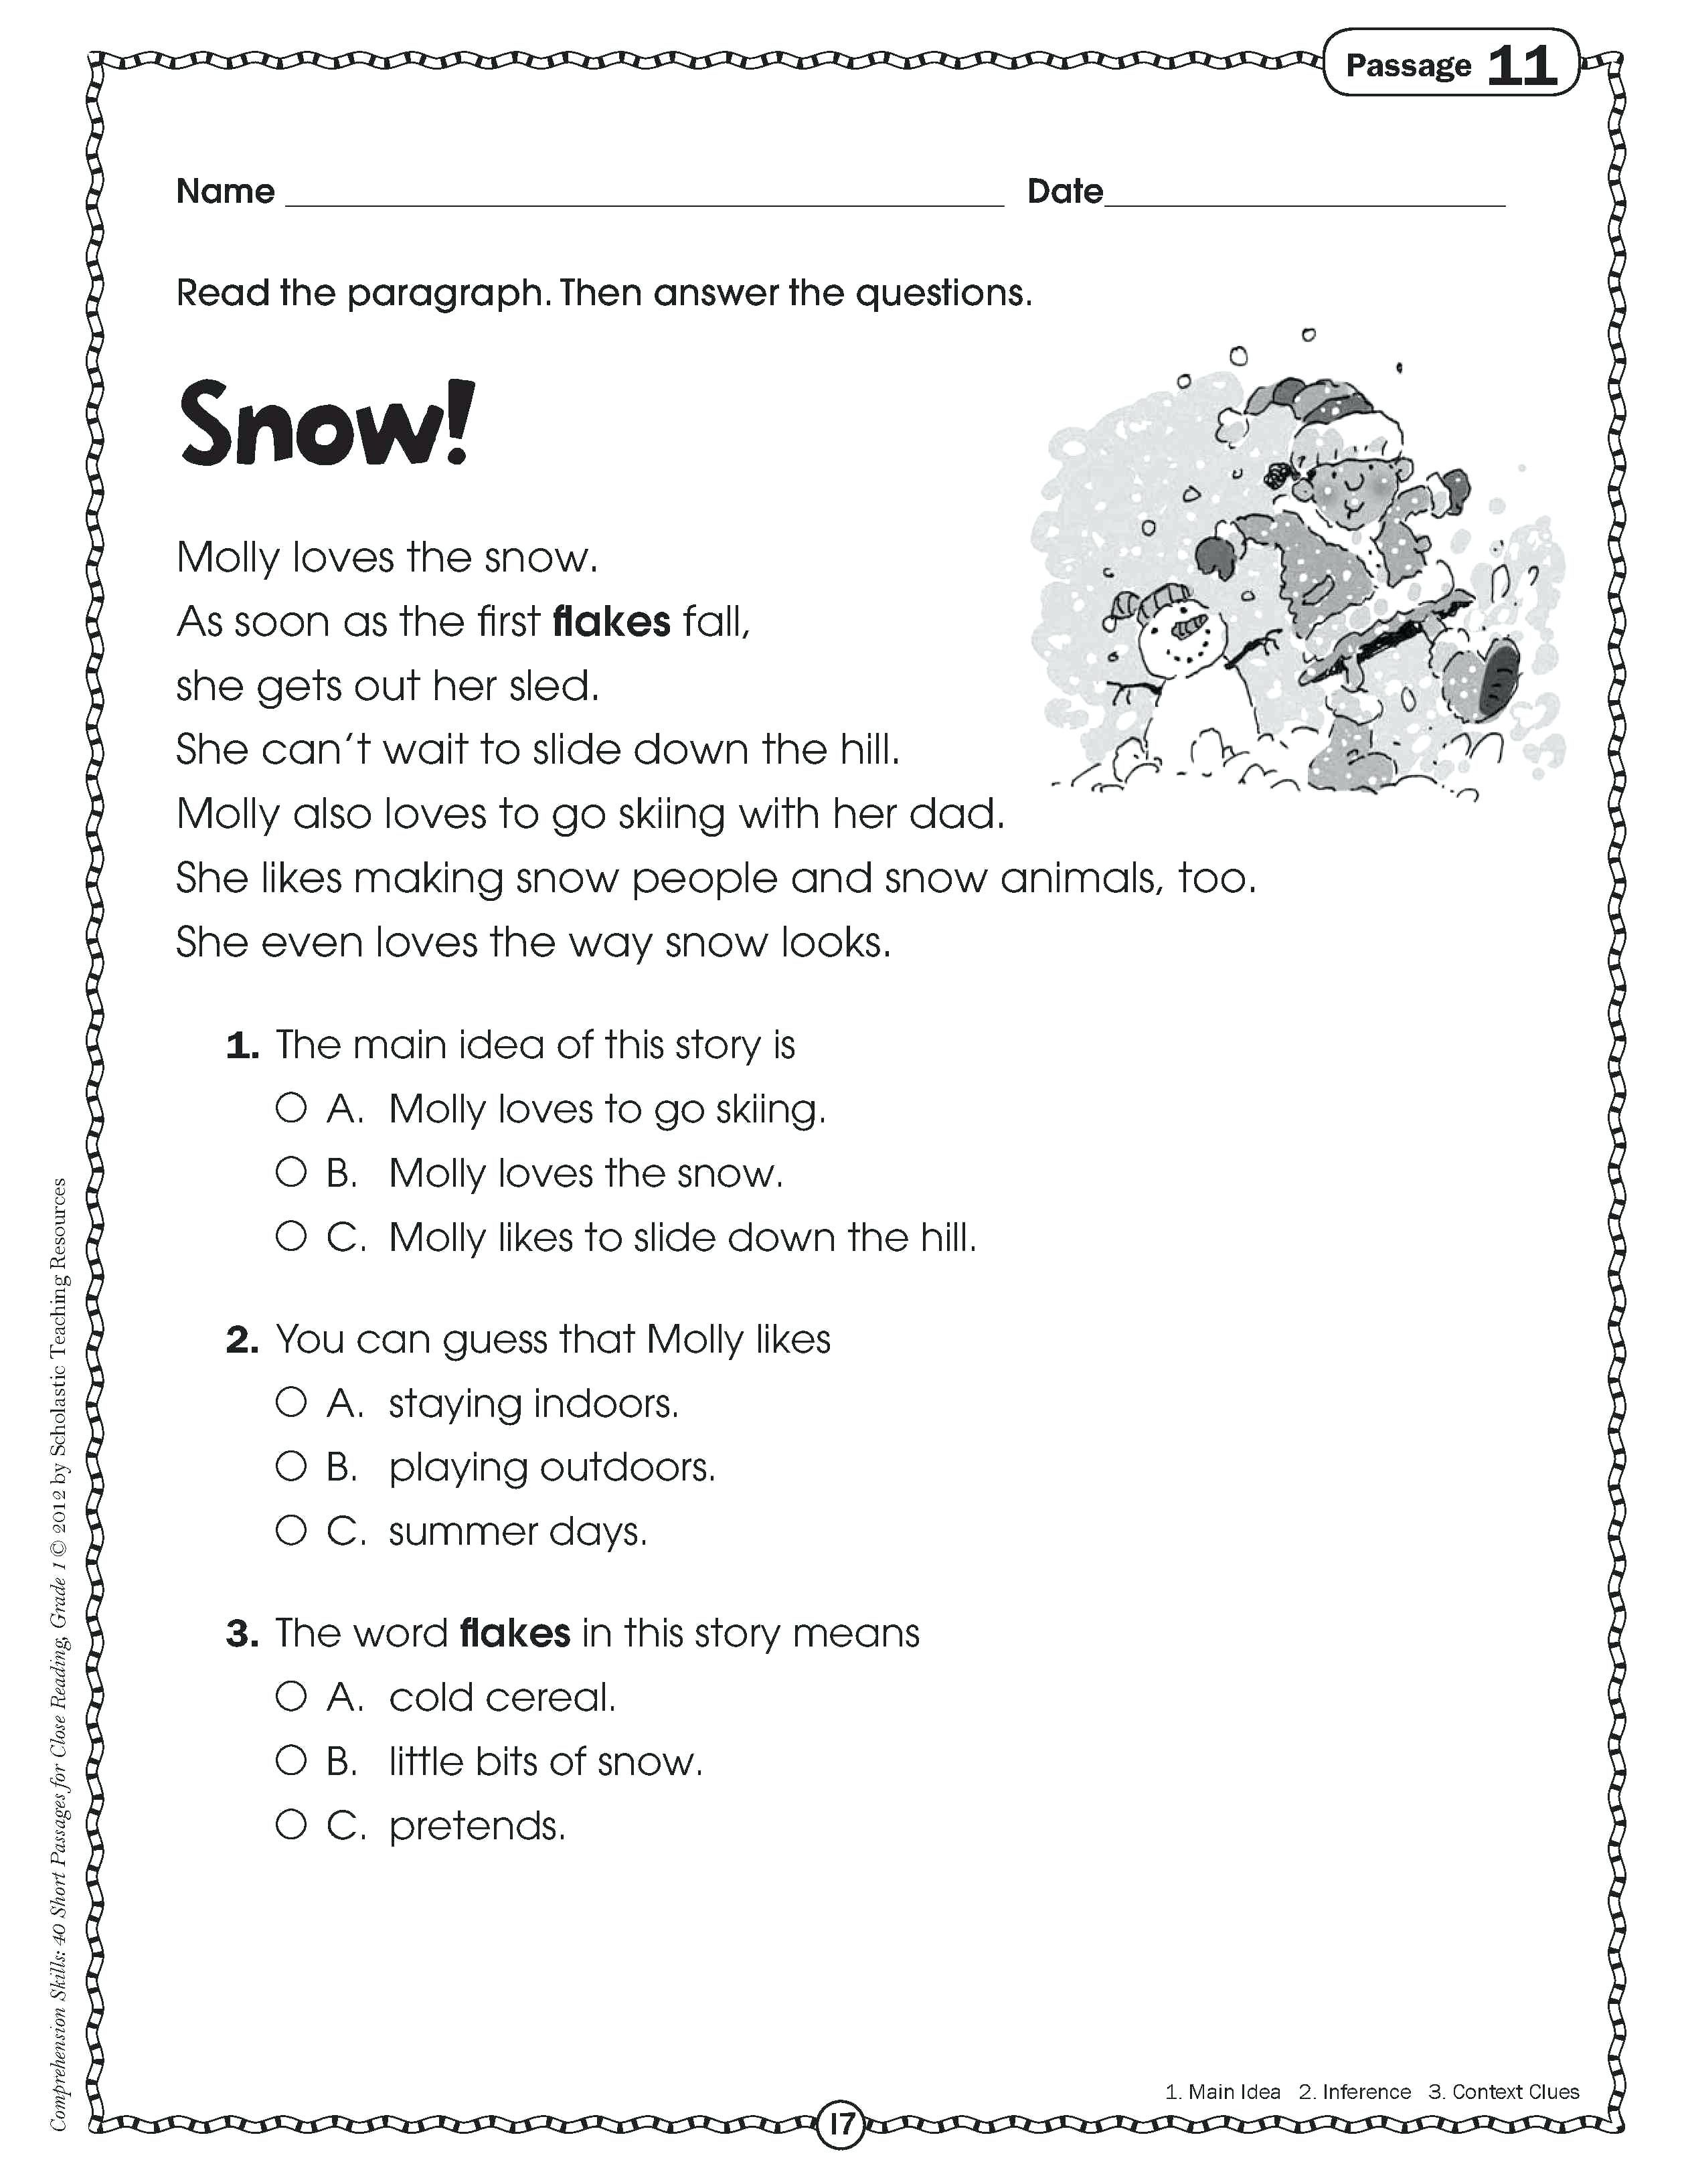 Worksheet For 2nd Grade Main Idea